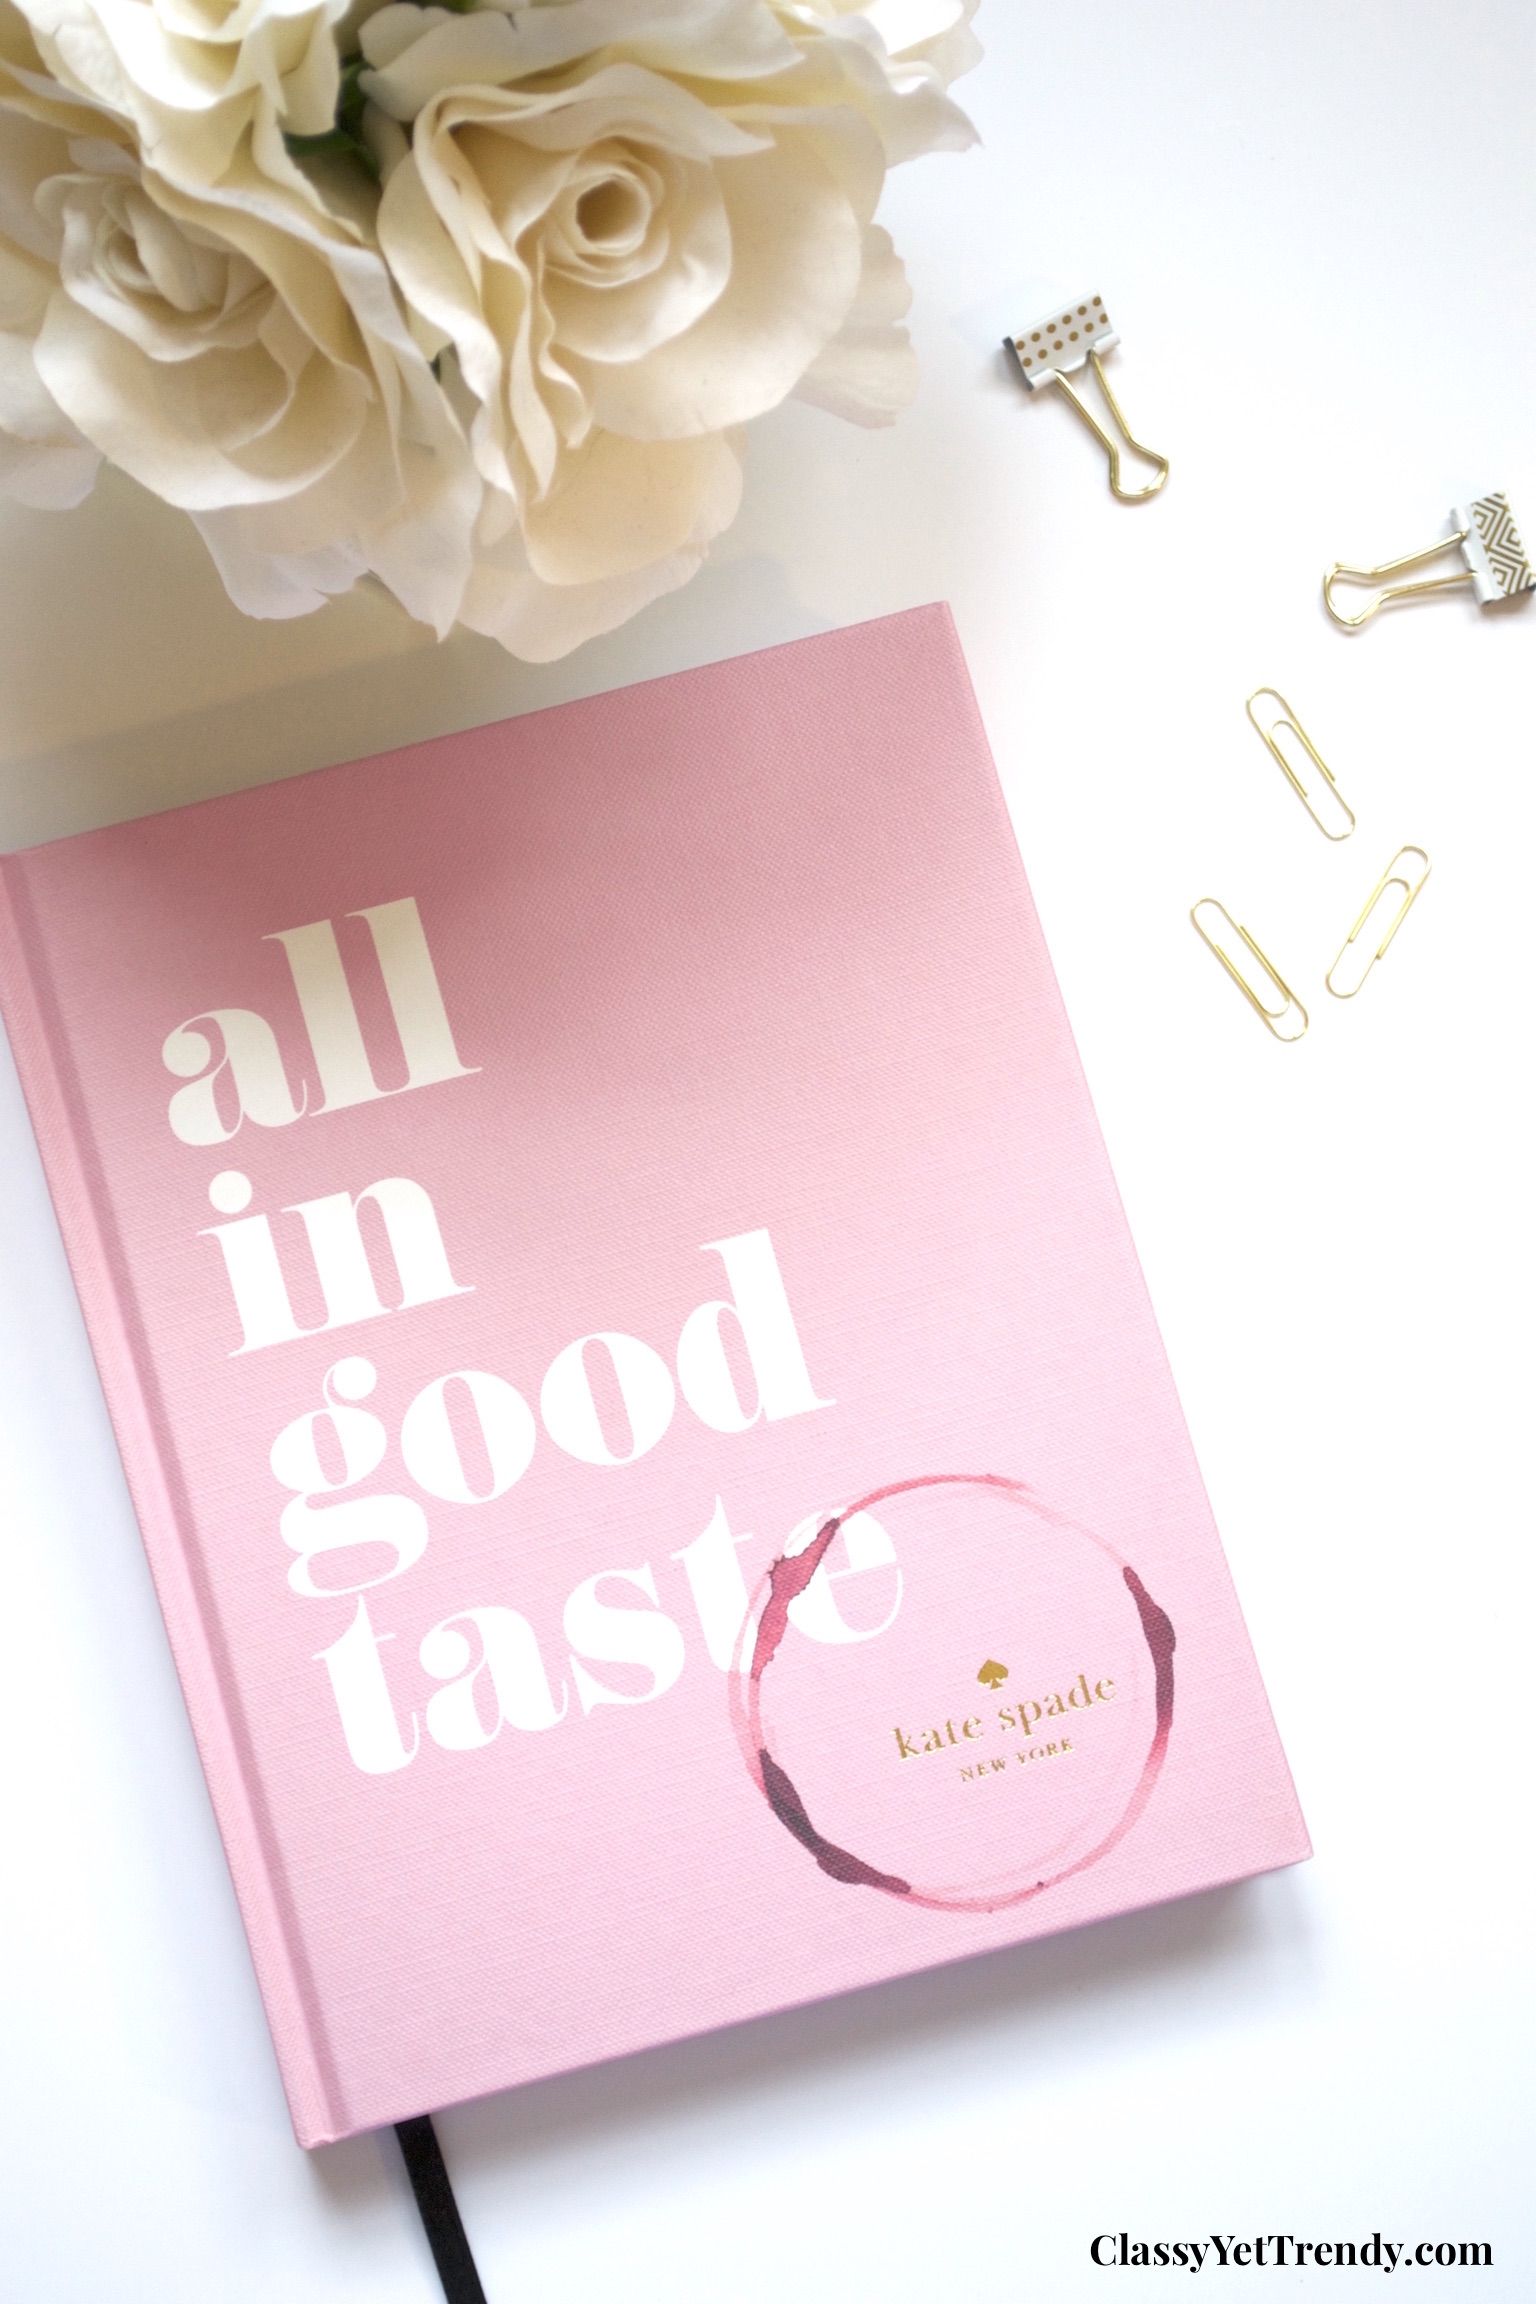 Reading these Fashion and Style books will make you feel like a #Girlboss!